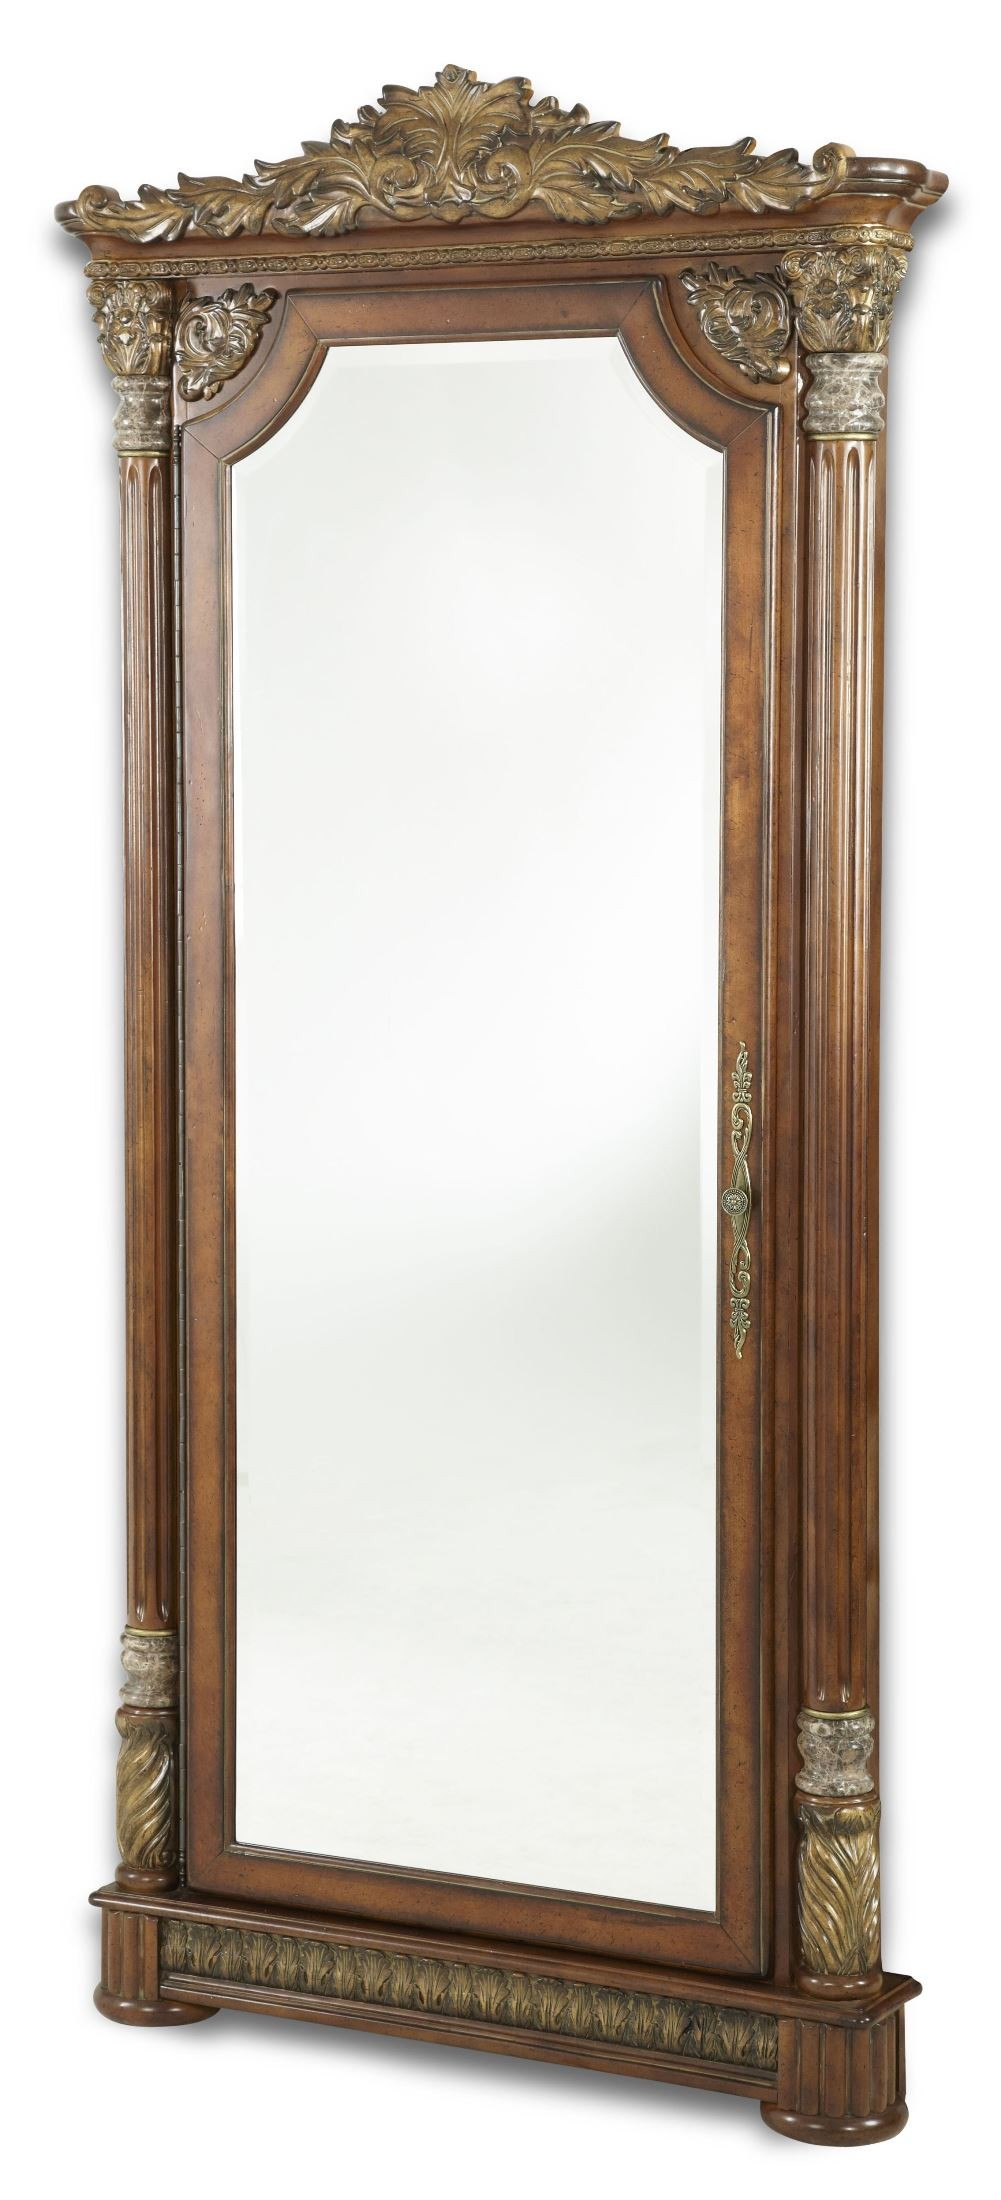 Villa valencia accent wall mirror from aico 72062 55 for Accent wall mirrors